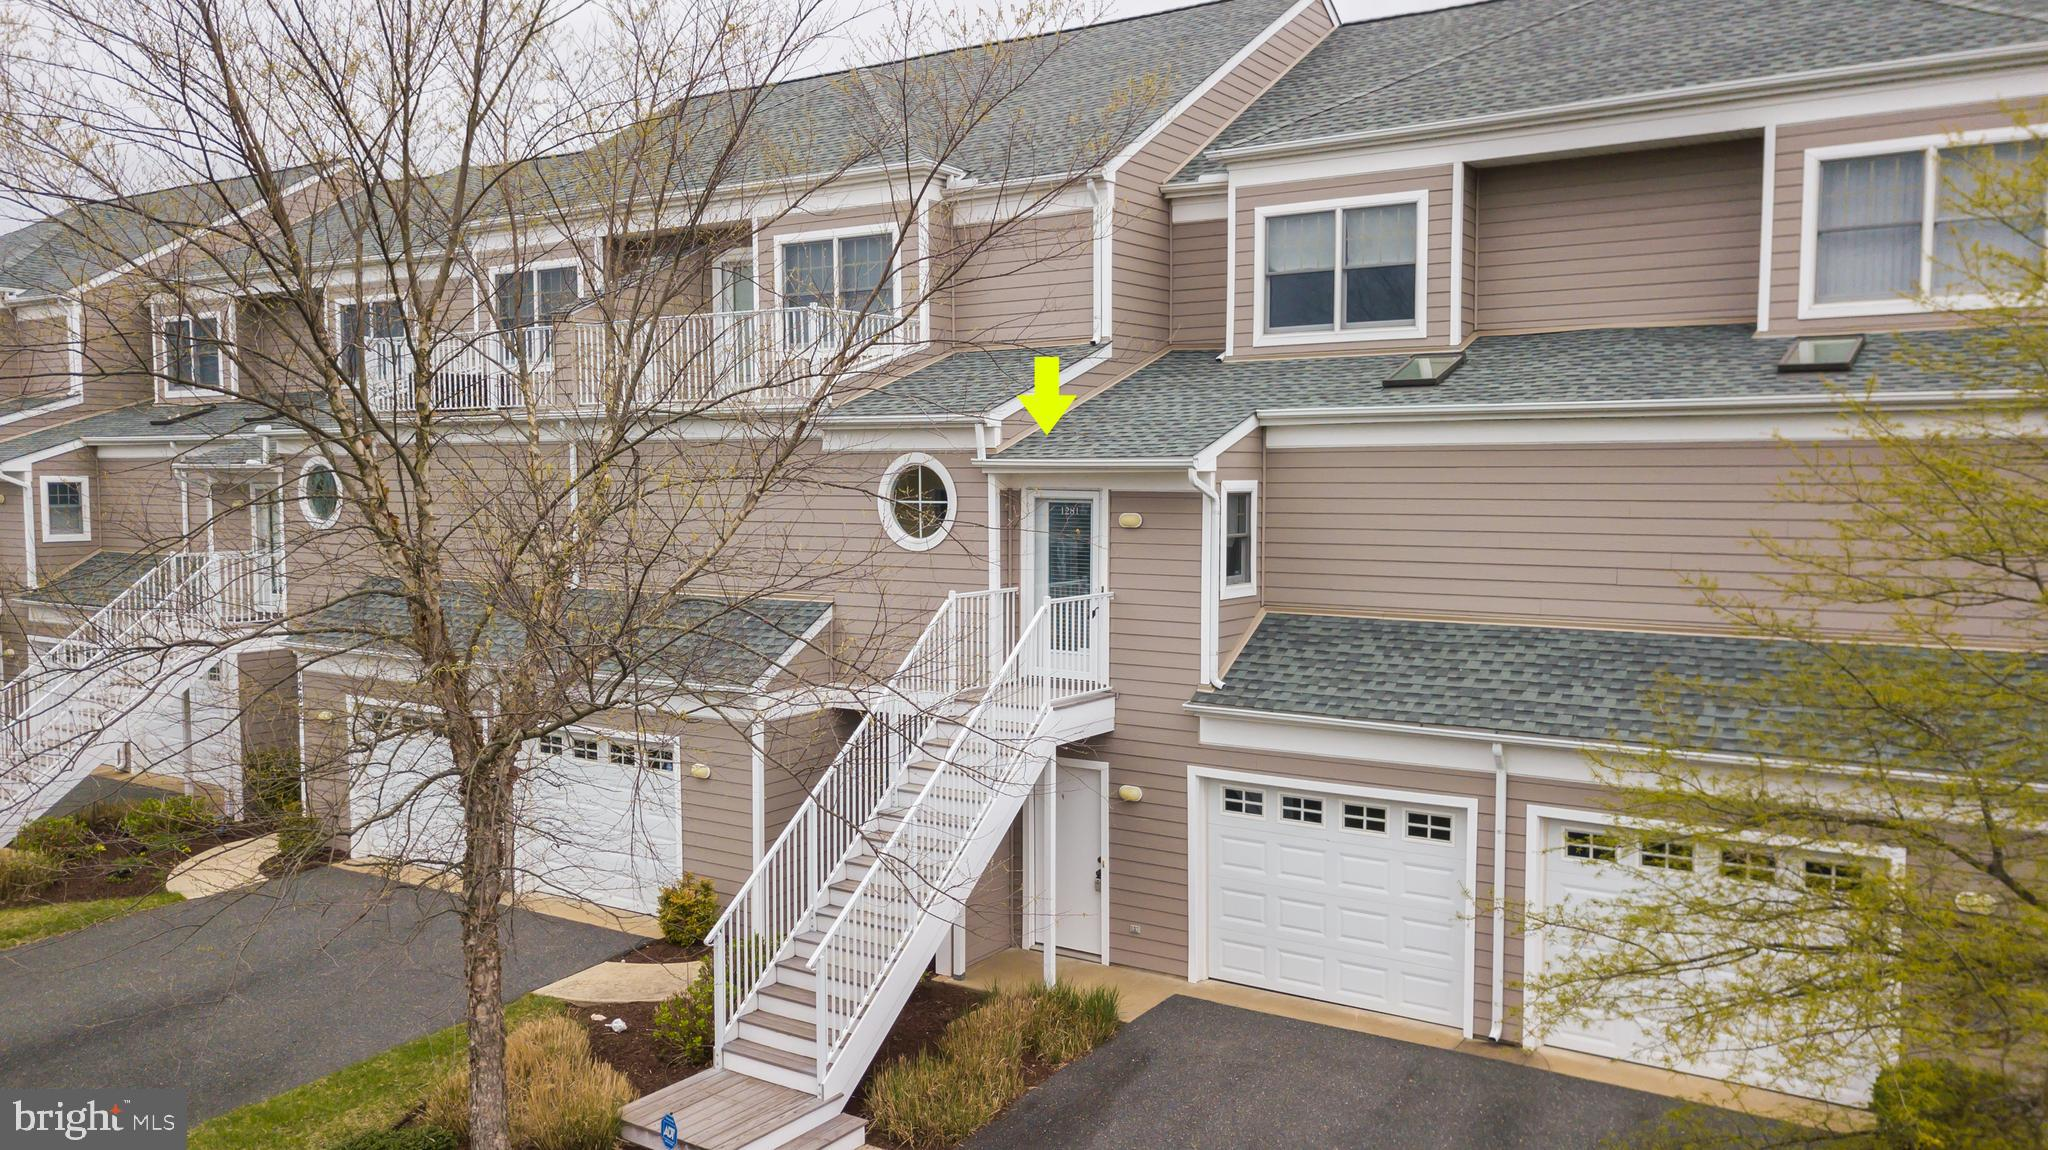 Spectacular Waterfront Views of expansive Pond: This beautiful coastal townhome has 3 bedrooms, 3.5